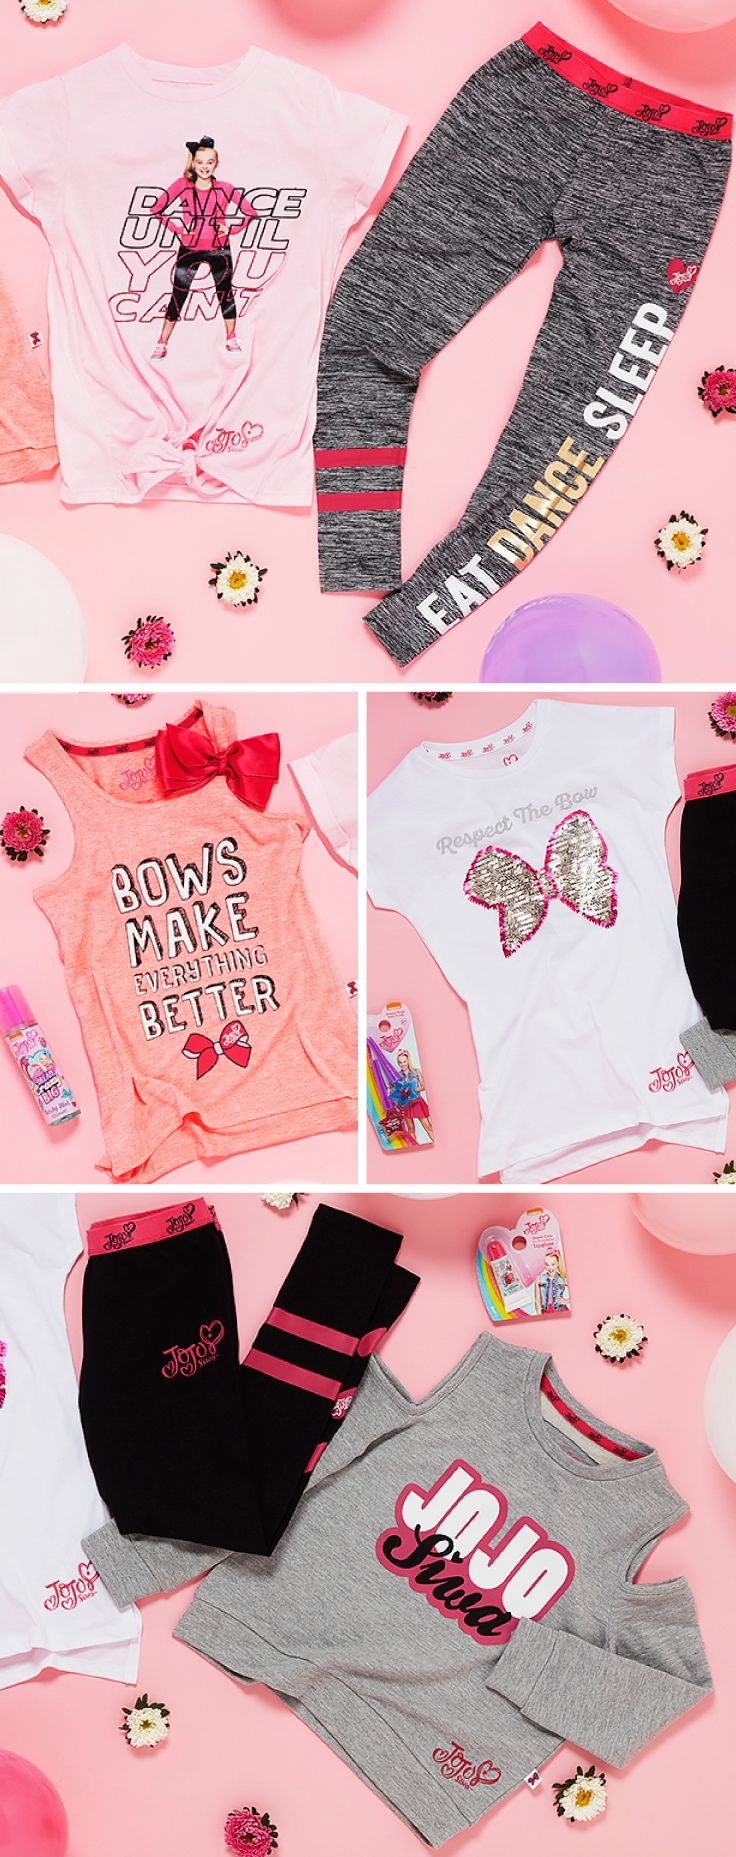 OMG! You can now buy JoJo Siwa Clothing from Primark!!!